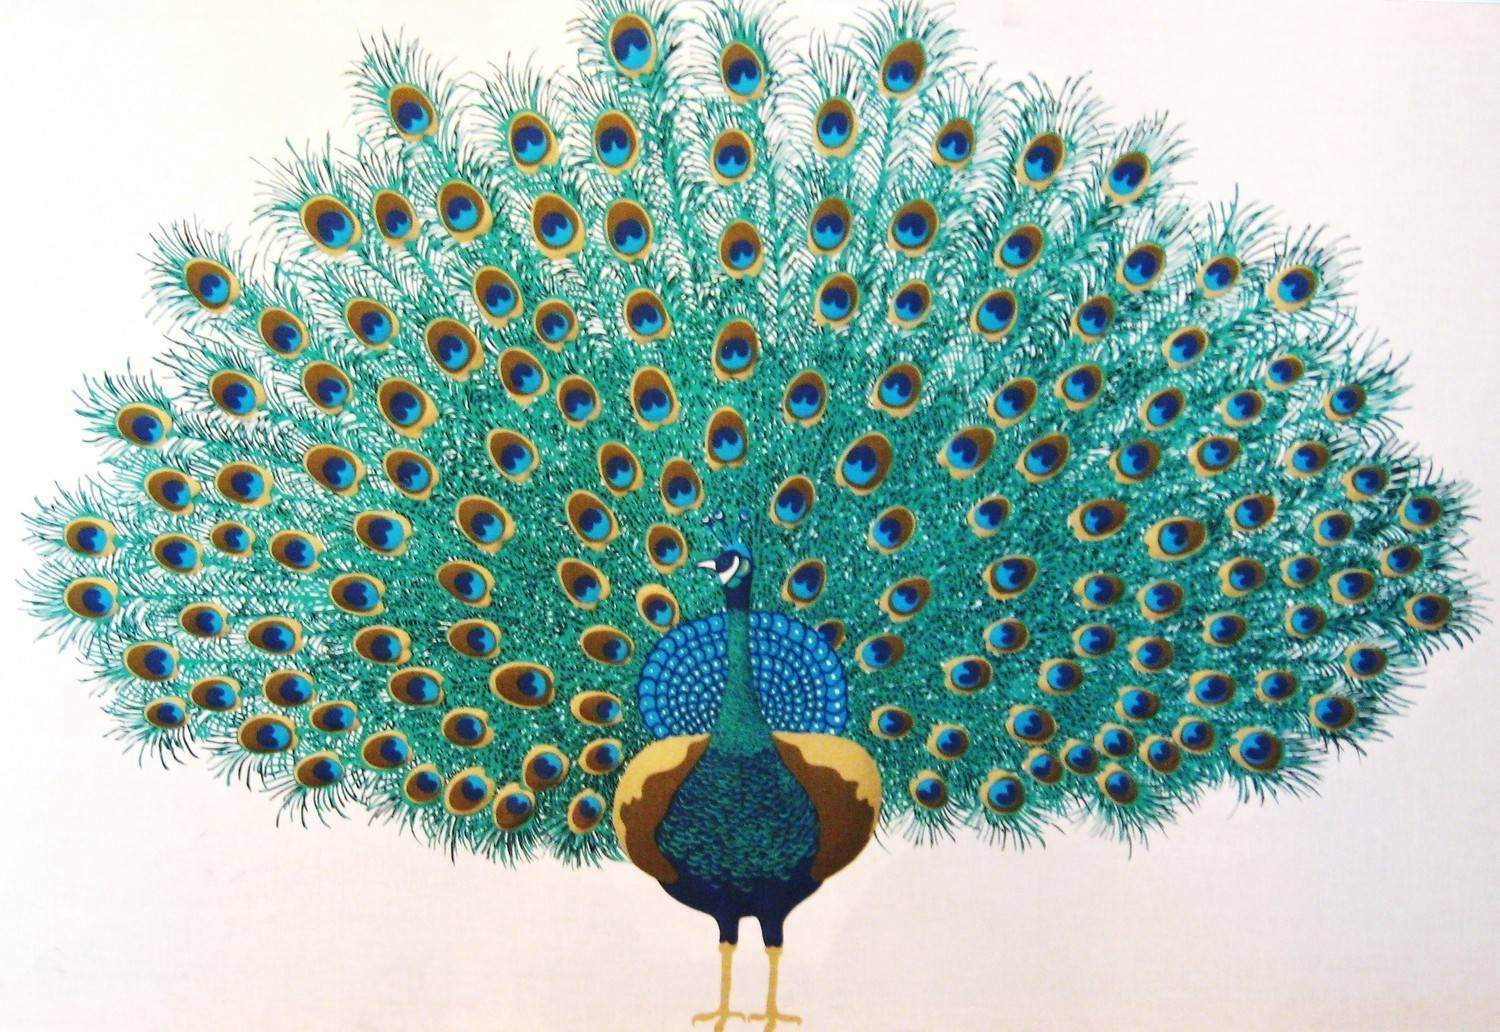 Peacock Images Art | Free Download Clip Art | Free Clip Art | On Pertaining To Most Recent Metal Peacock Wall Art (View 17 of 20)